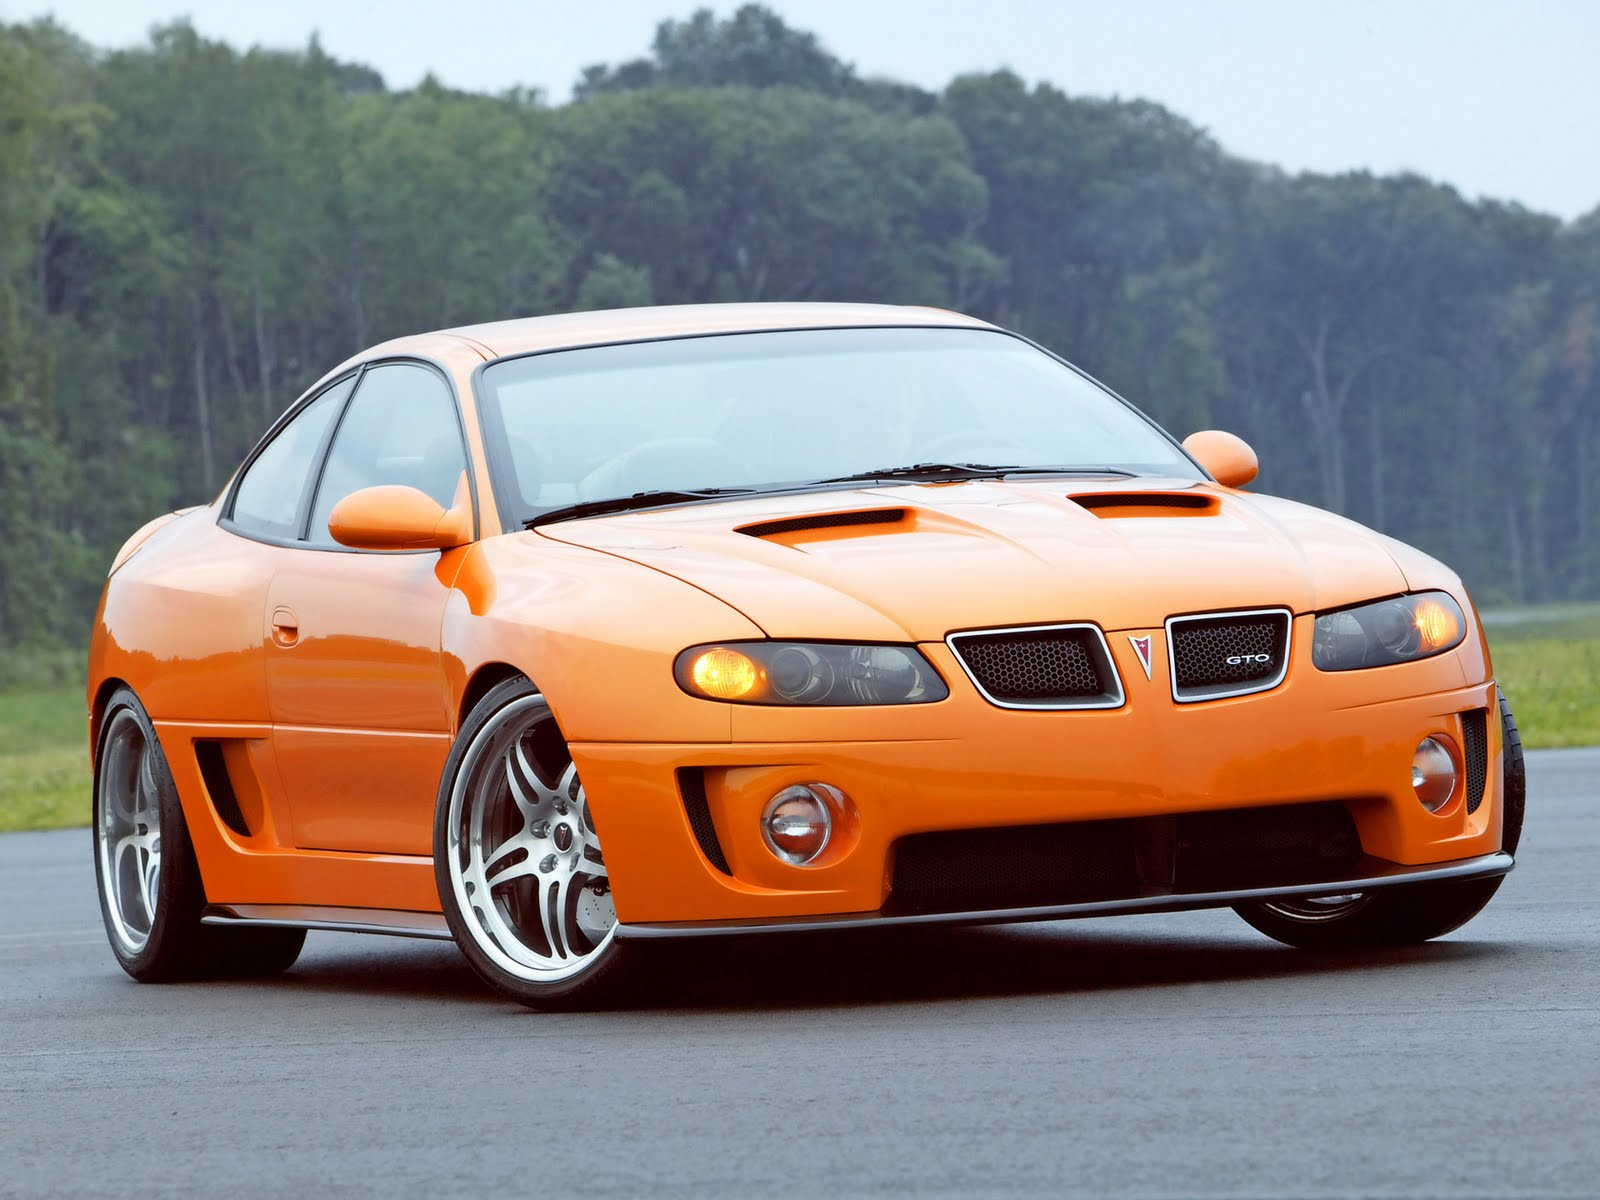 amazing cars reviews and wallpapers 2011 pontiac gto 2004 pontiac grand prix gtp owners manual 2004 pontiac grand prix owner's manual